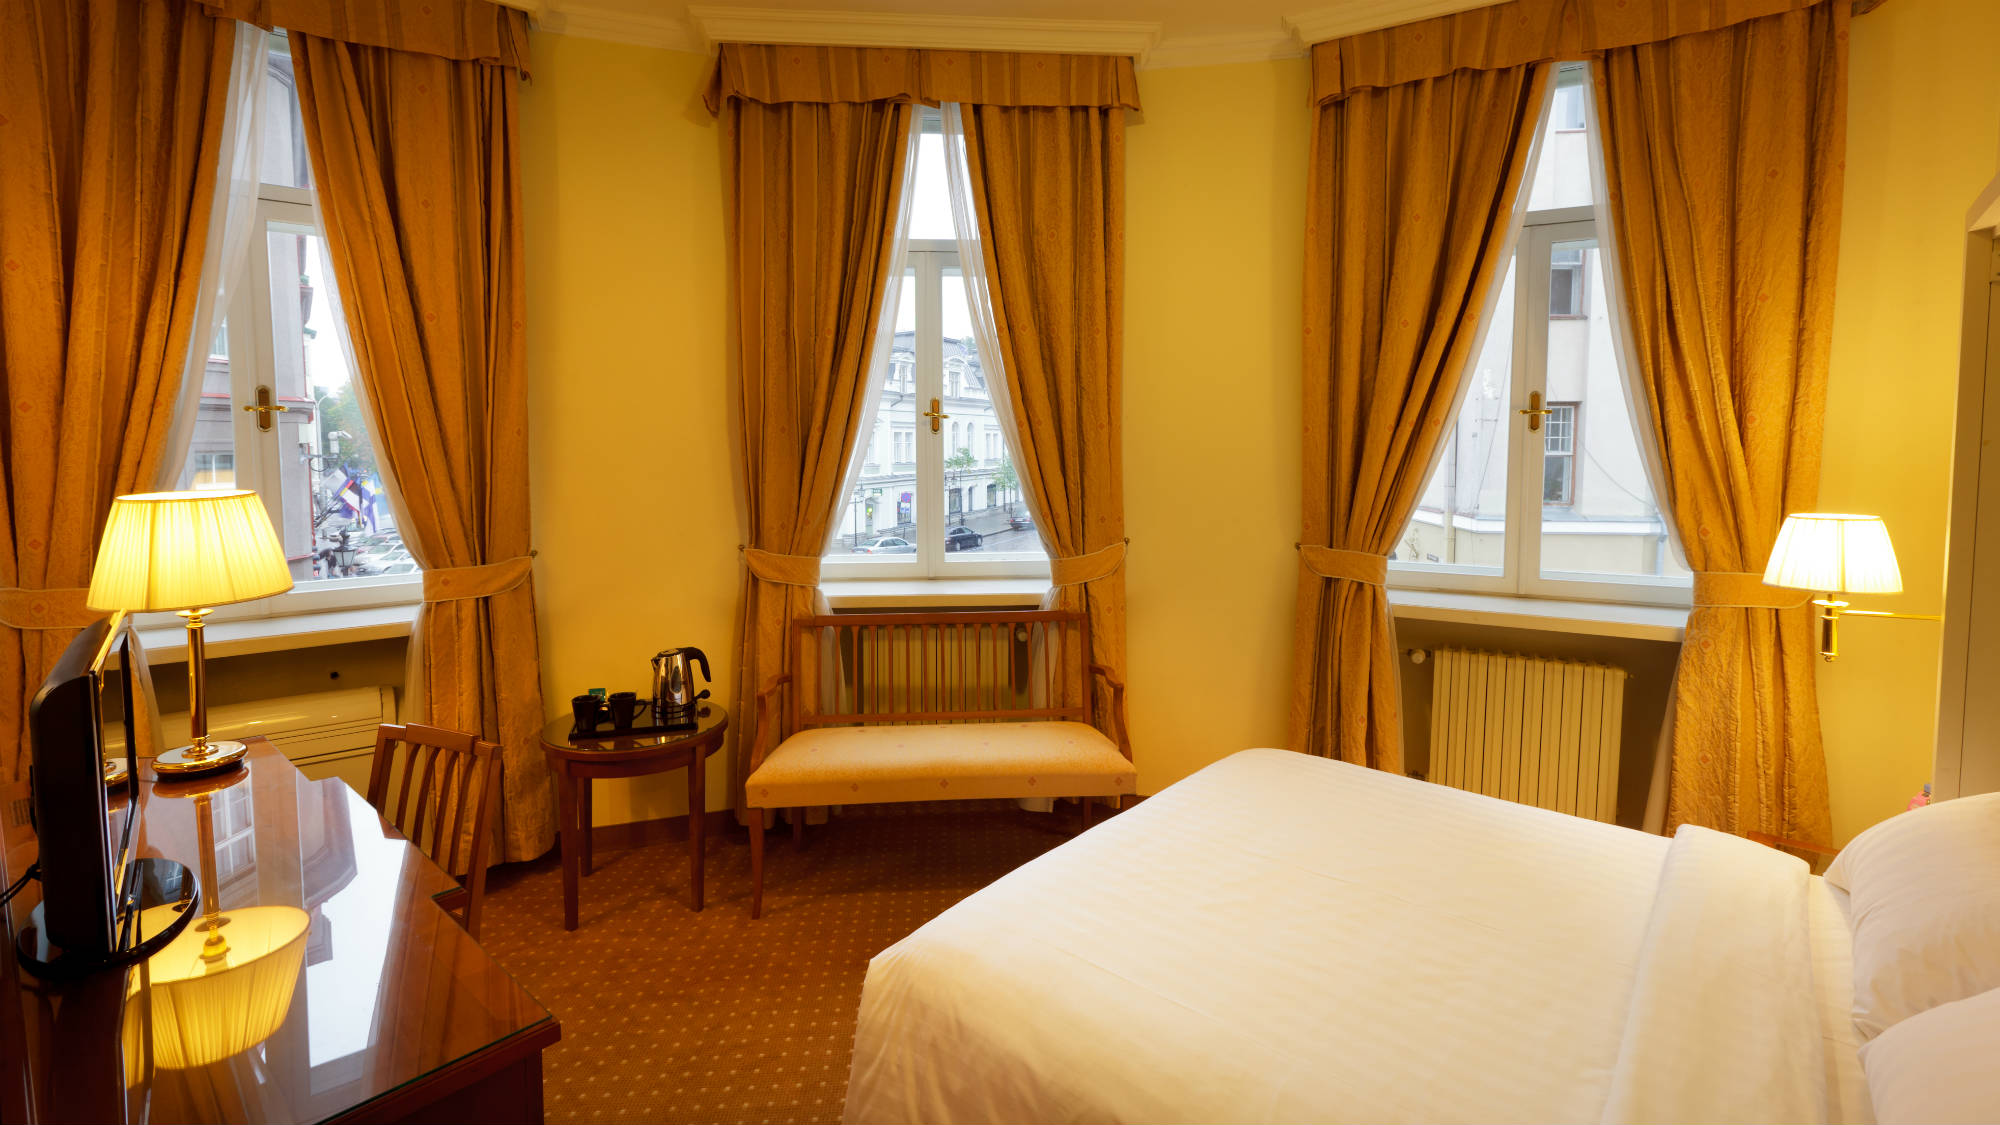 Superior Double Room, corner room